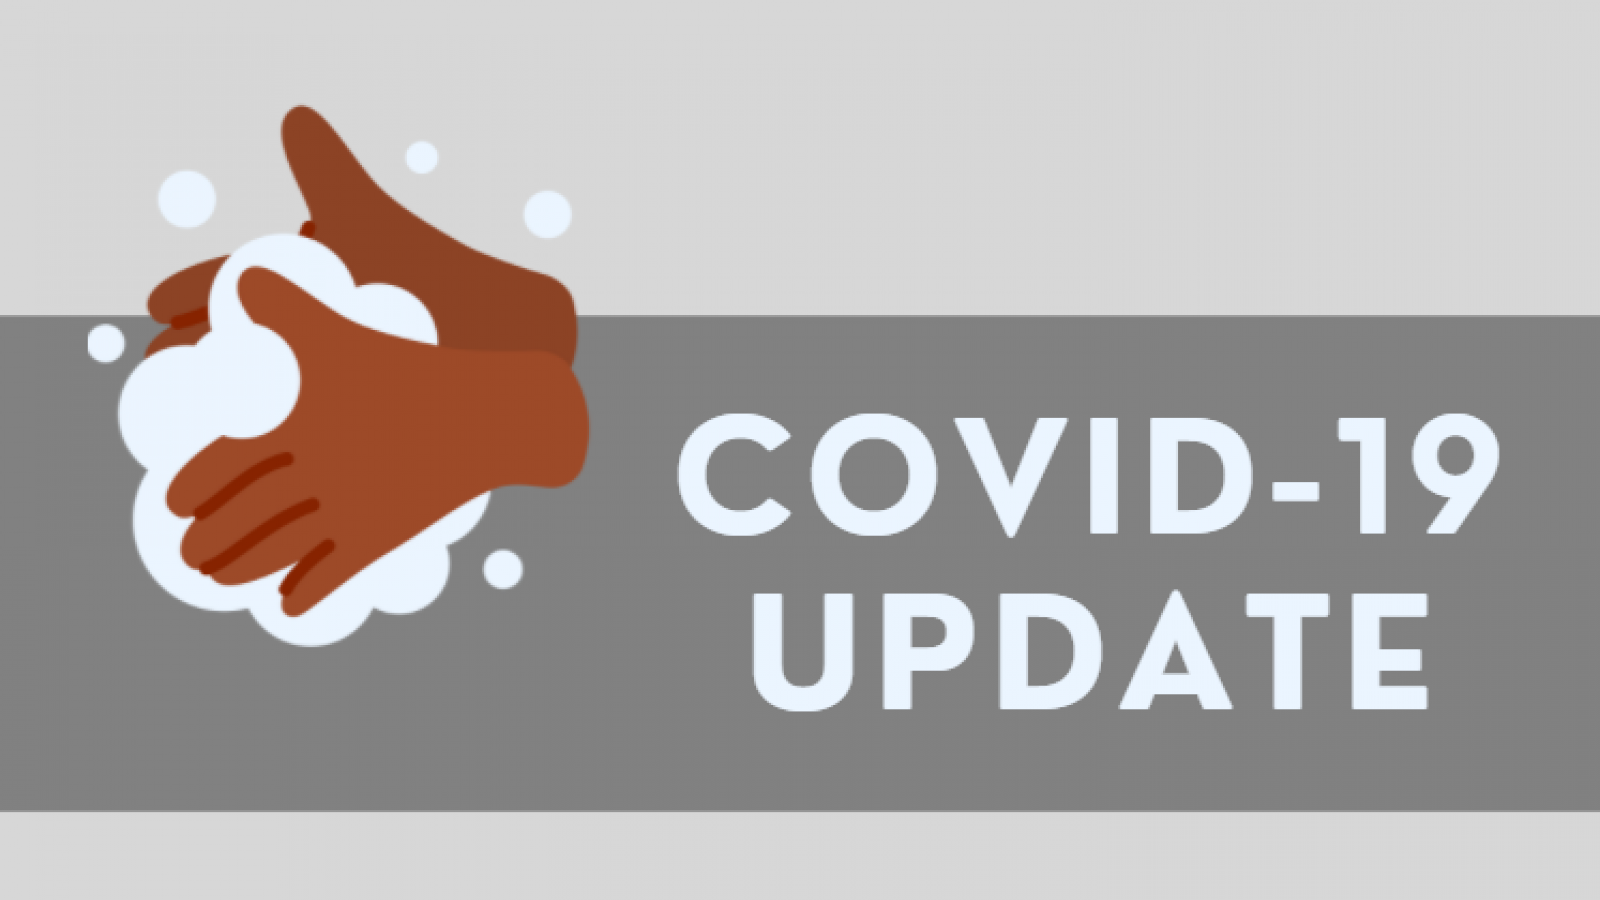 COVID-19 Update from Musqueam